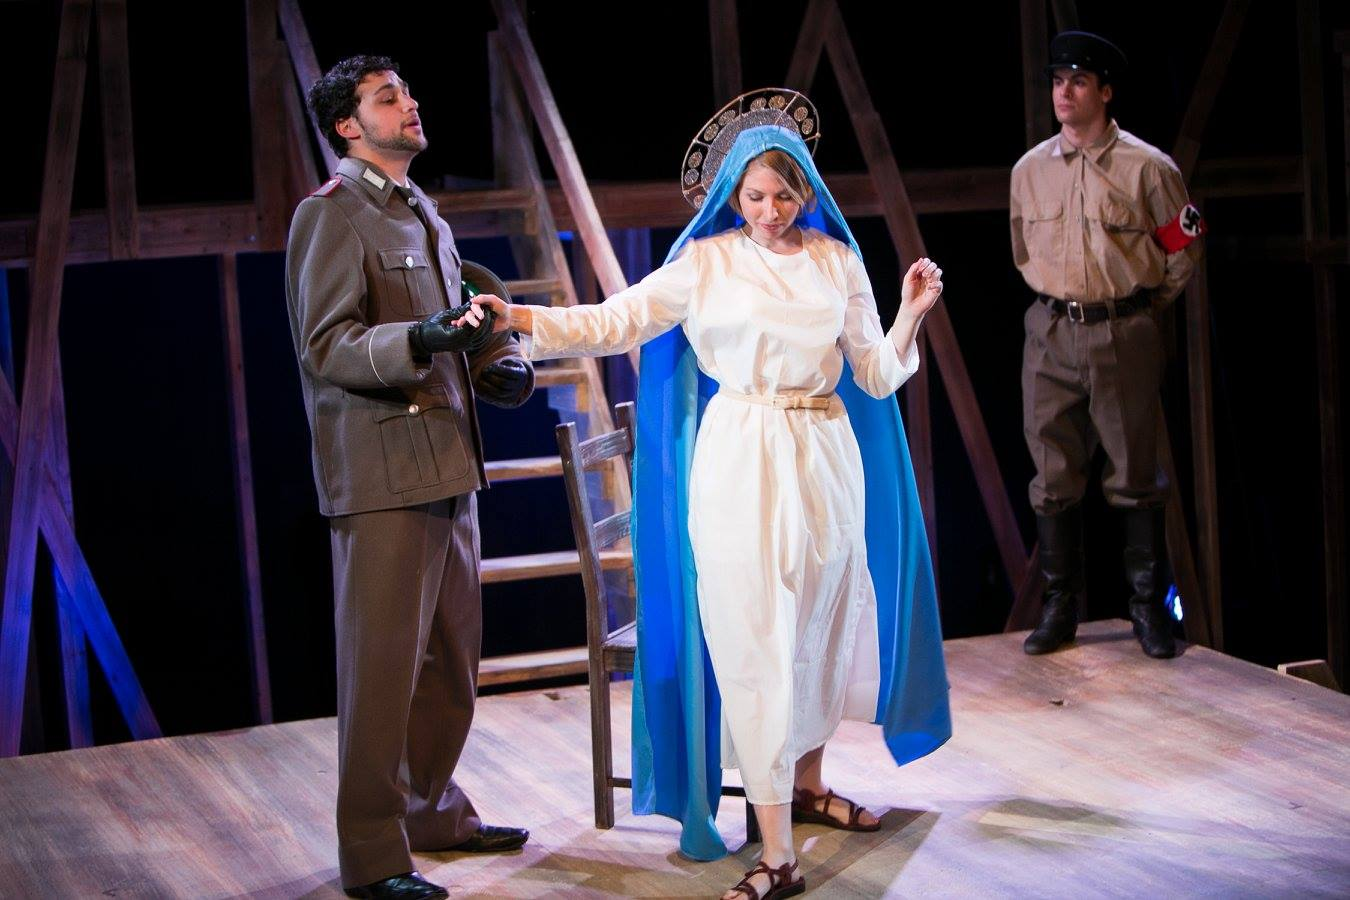 German Officer, Elsa (Virgin Mary), and Foot Soldier from Act 2 of Sarah Ruhl's Passion Play costume design by Katharine Tarkulich